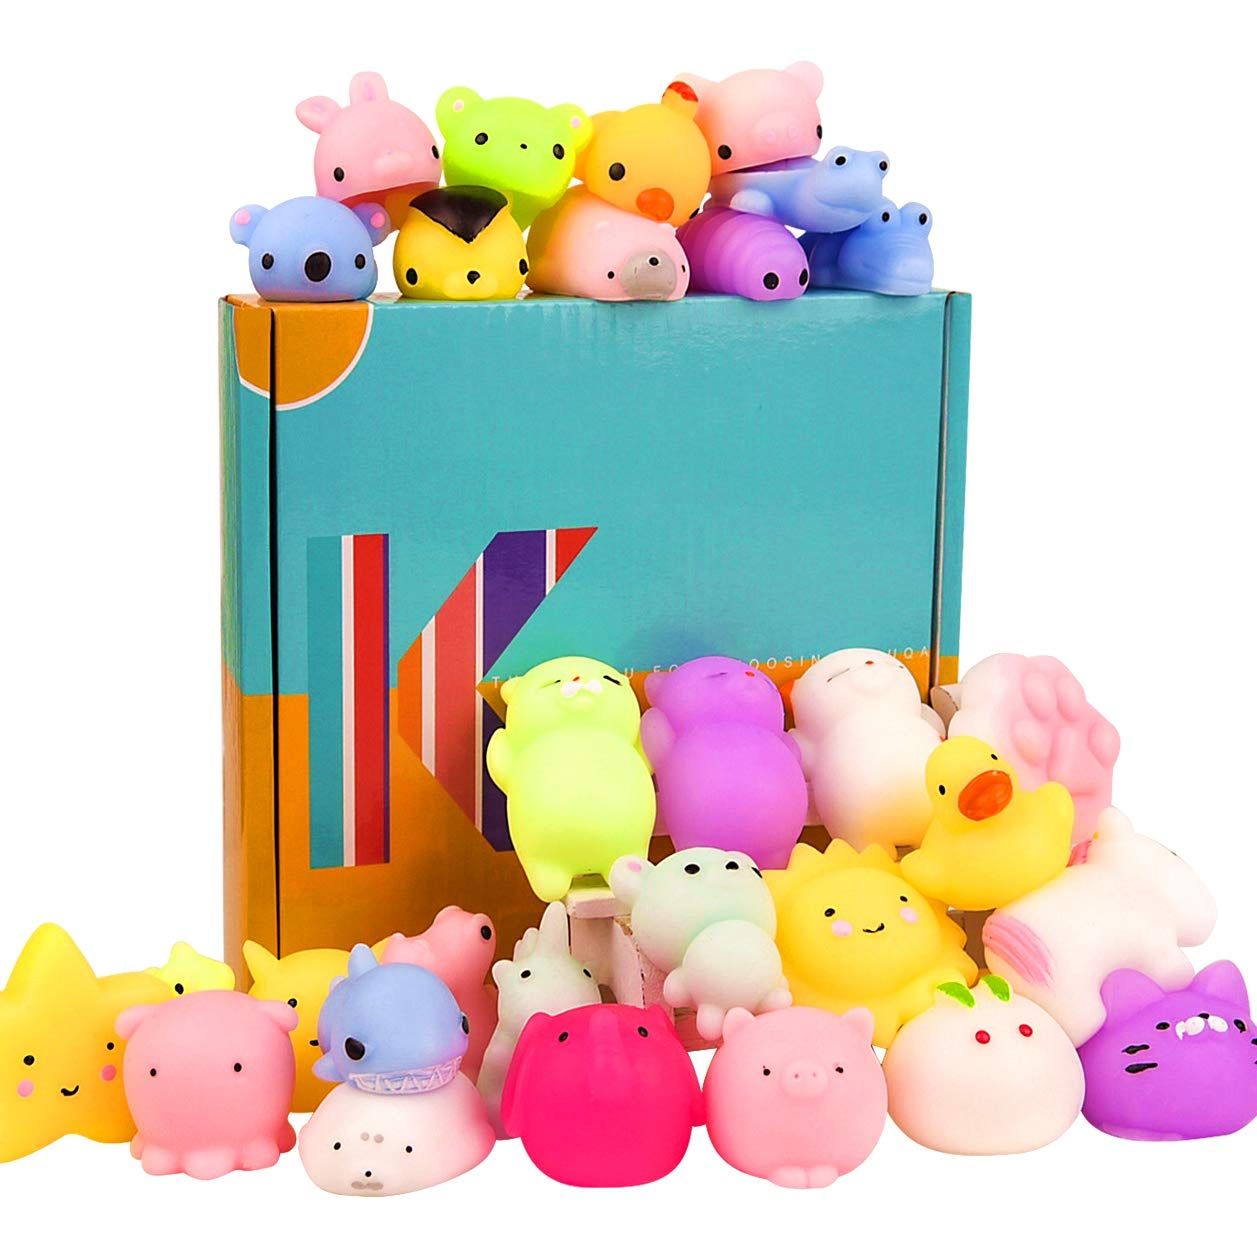 KUUQA 30 Pcs Mochi Squishies Easter Egg Fillers Kawaii Animal Squishy Unicorn Dinosaur Tortoise Mini Soft Squeeze Stress Reliever Toys for Kids Adults Birthday Party Favors Bags